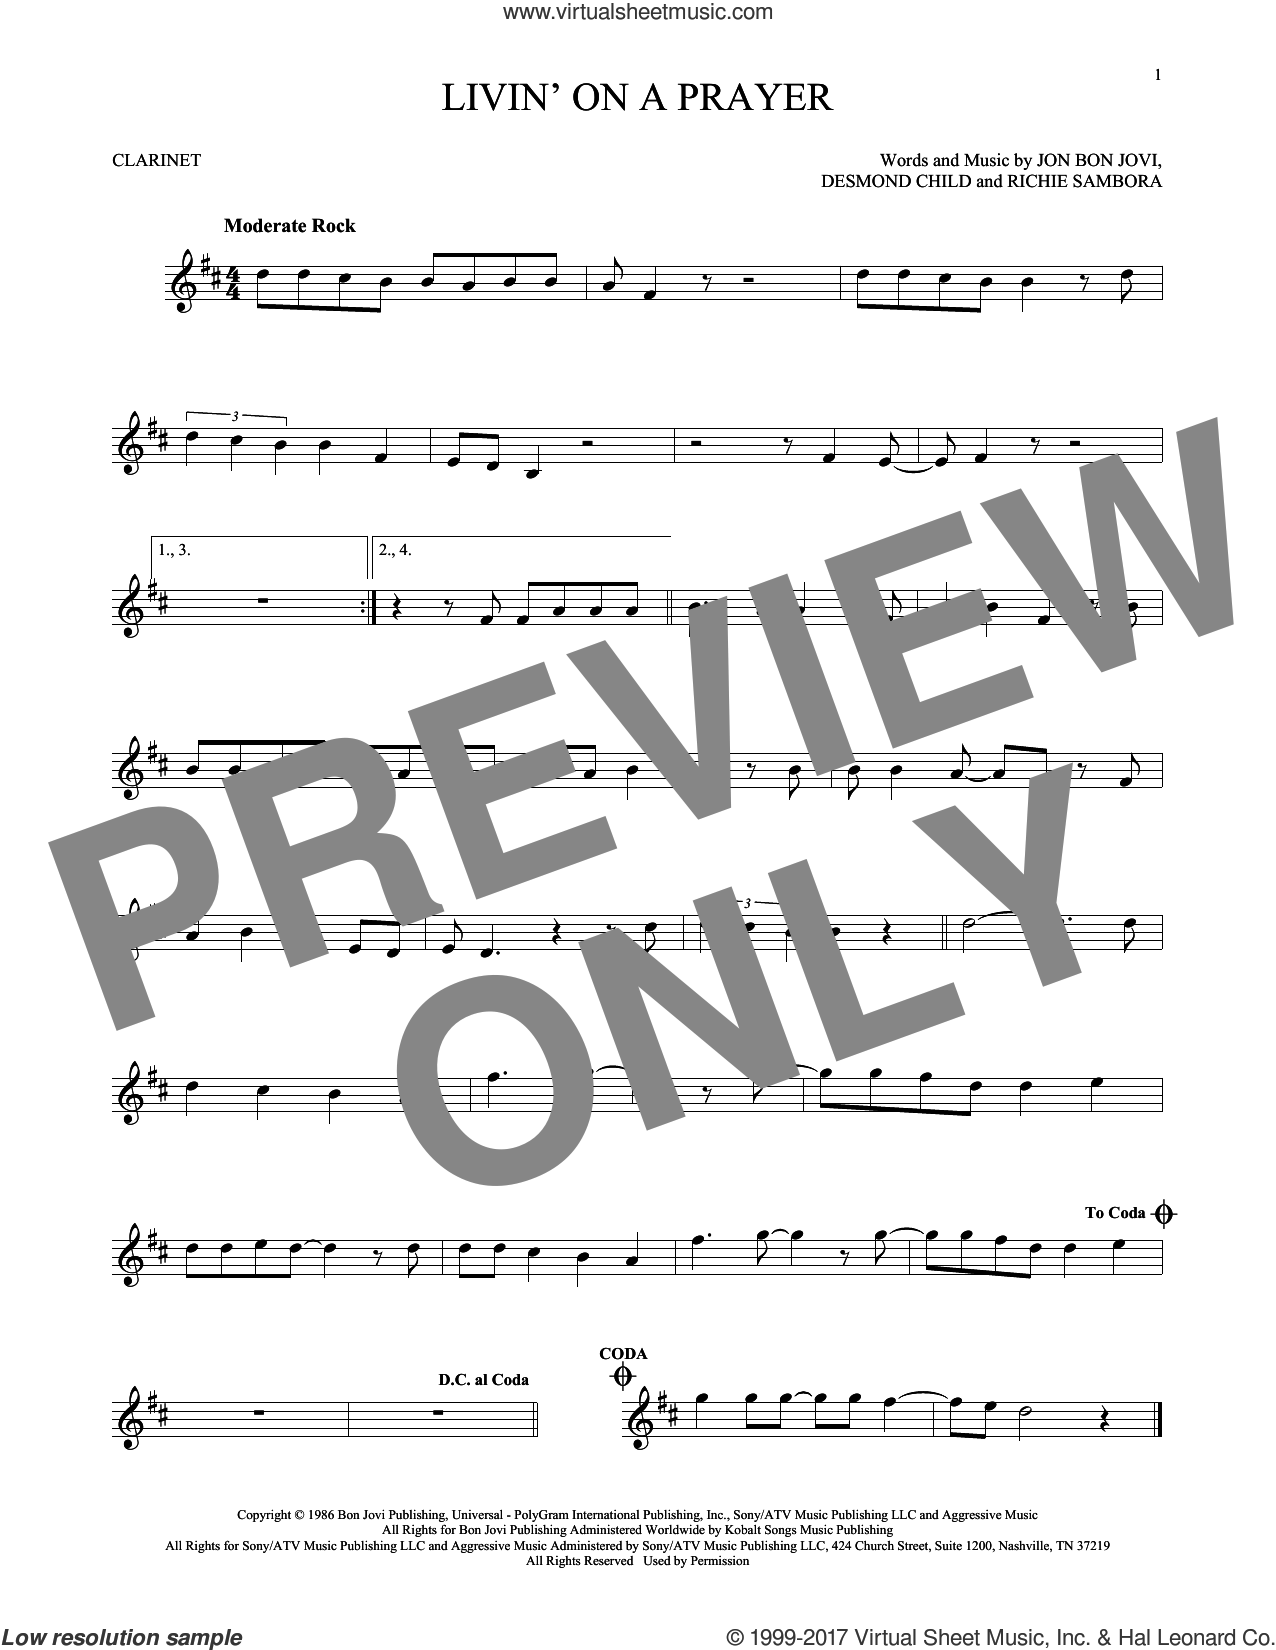 Livin' On A Prayer sheet music for clarinet solo by Bon Jovi, Desmond Child and Richie Sambora. Score Image Preview.